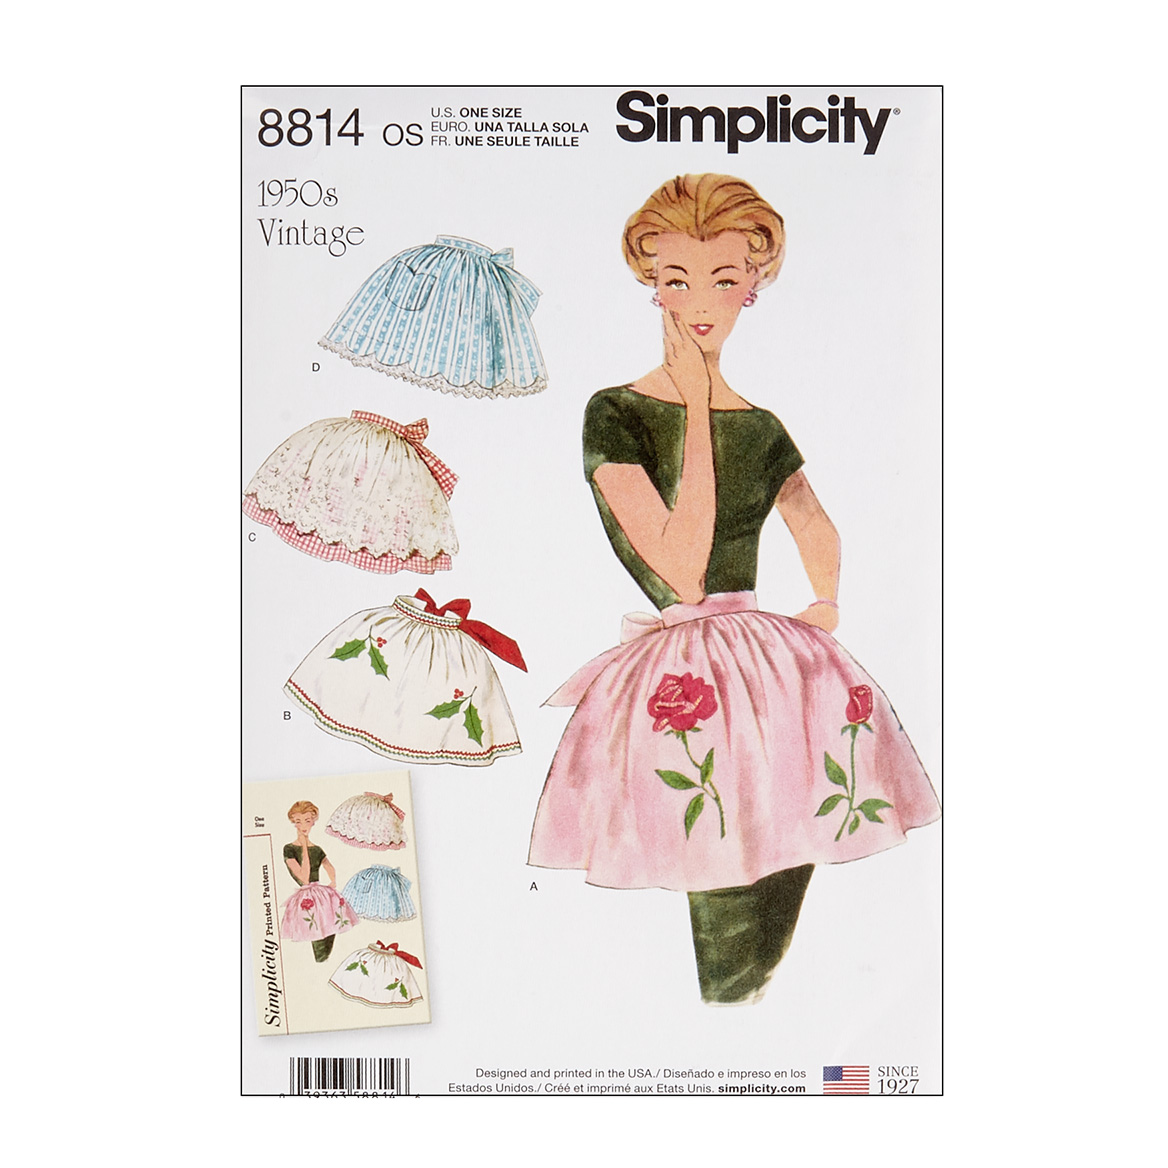 Vintage Aprons, Retro Aprons, Old Fashioned Aprons & Patterns Simplicity 8814 Misses Vintage Aprons OS One Size $13.77 AT vintagedancer.com